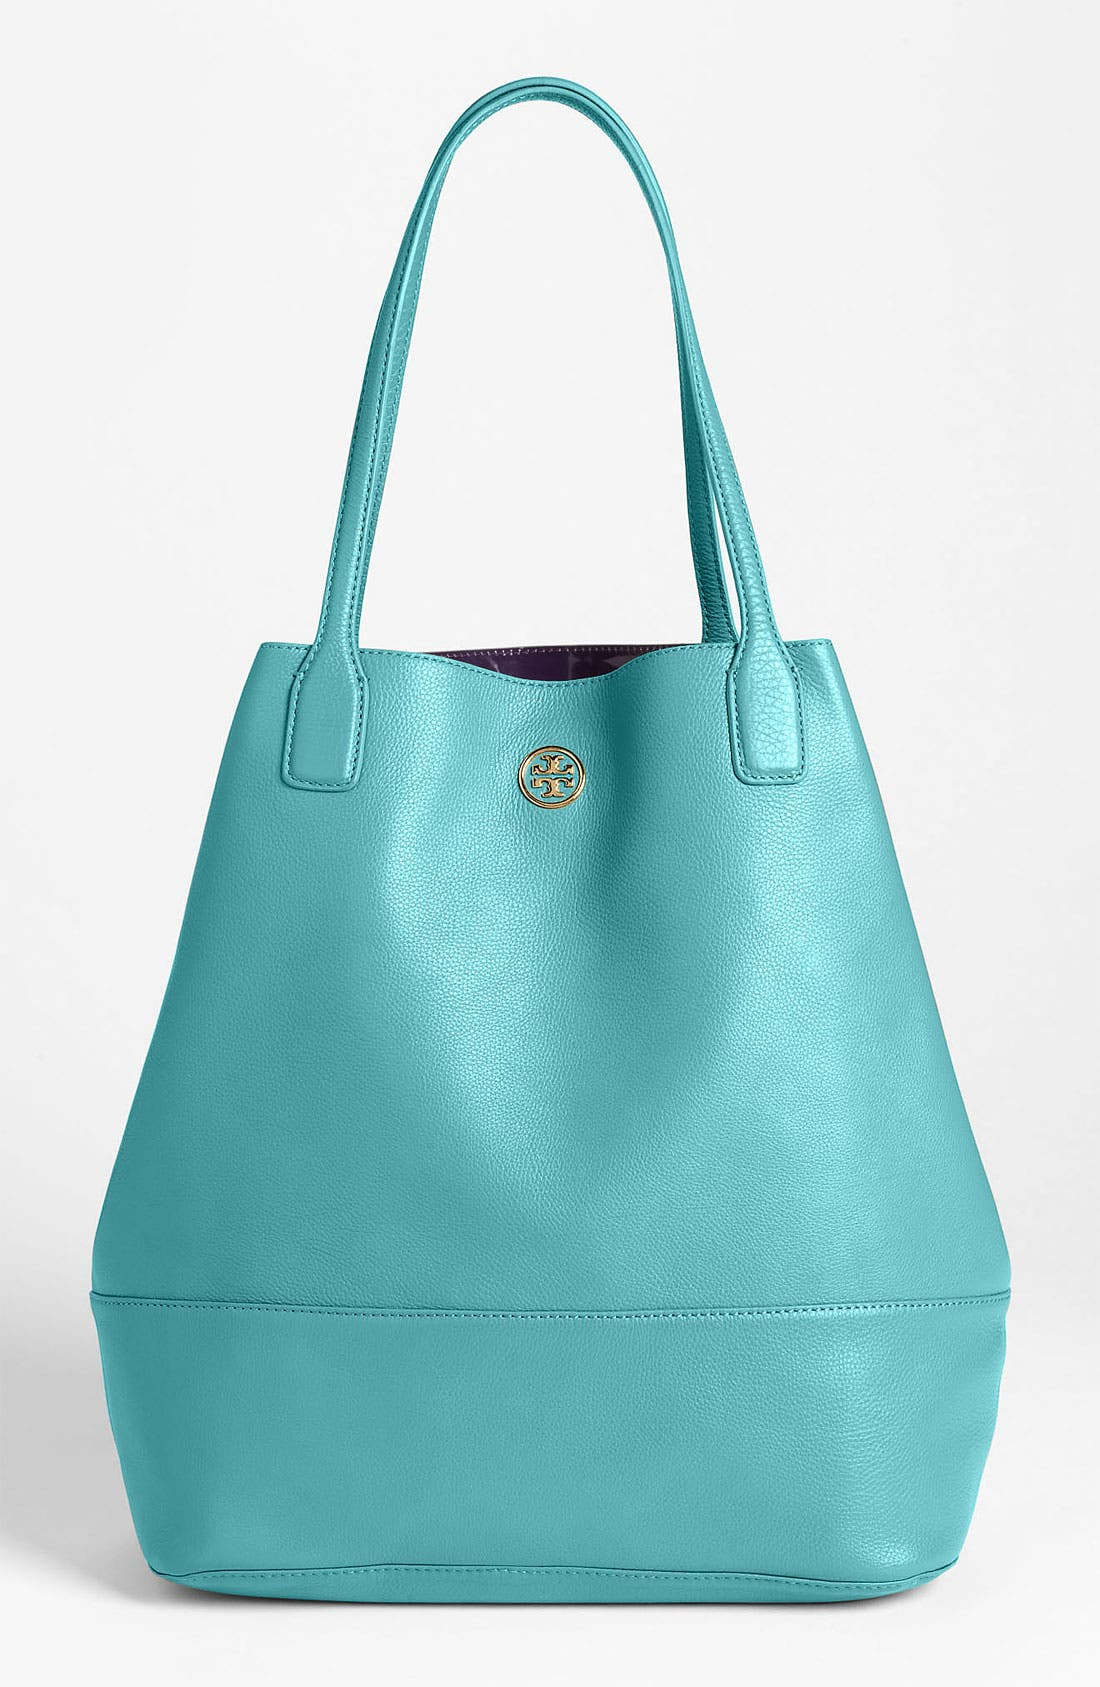 Main Image - Tory Burch 'Michelle Angelux' Leather Tote